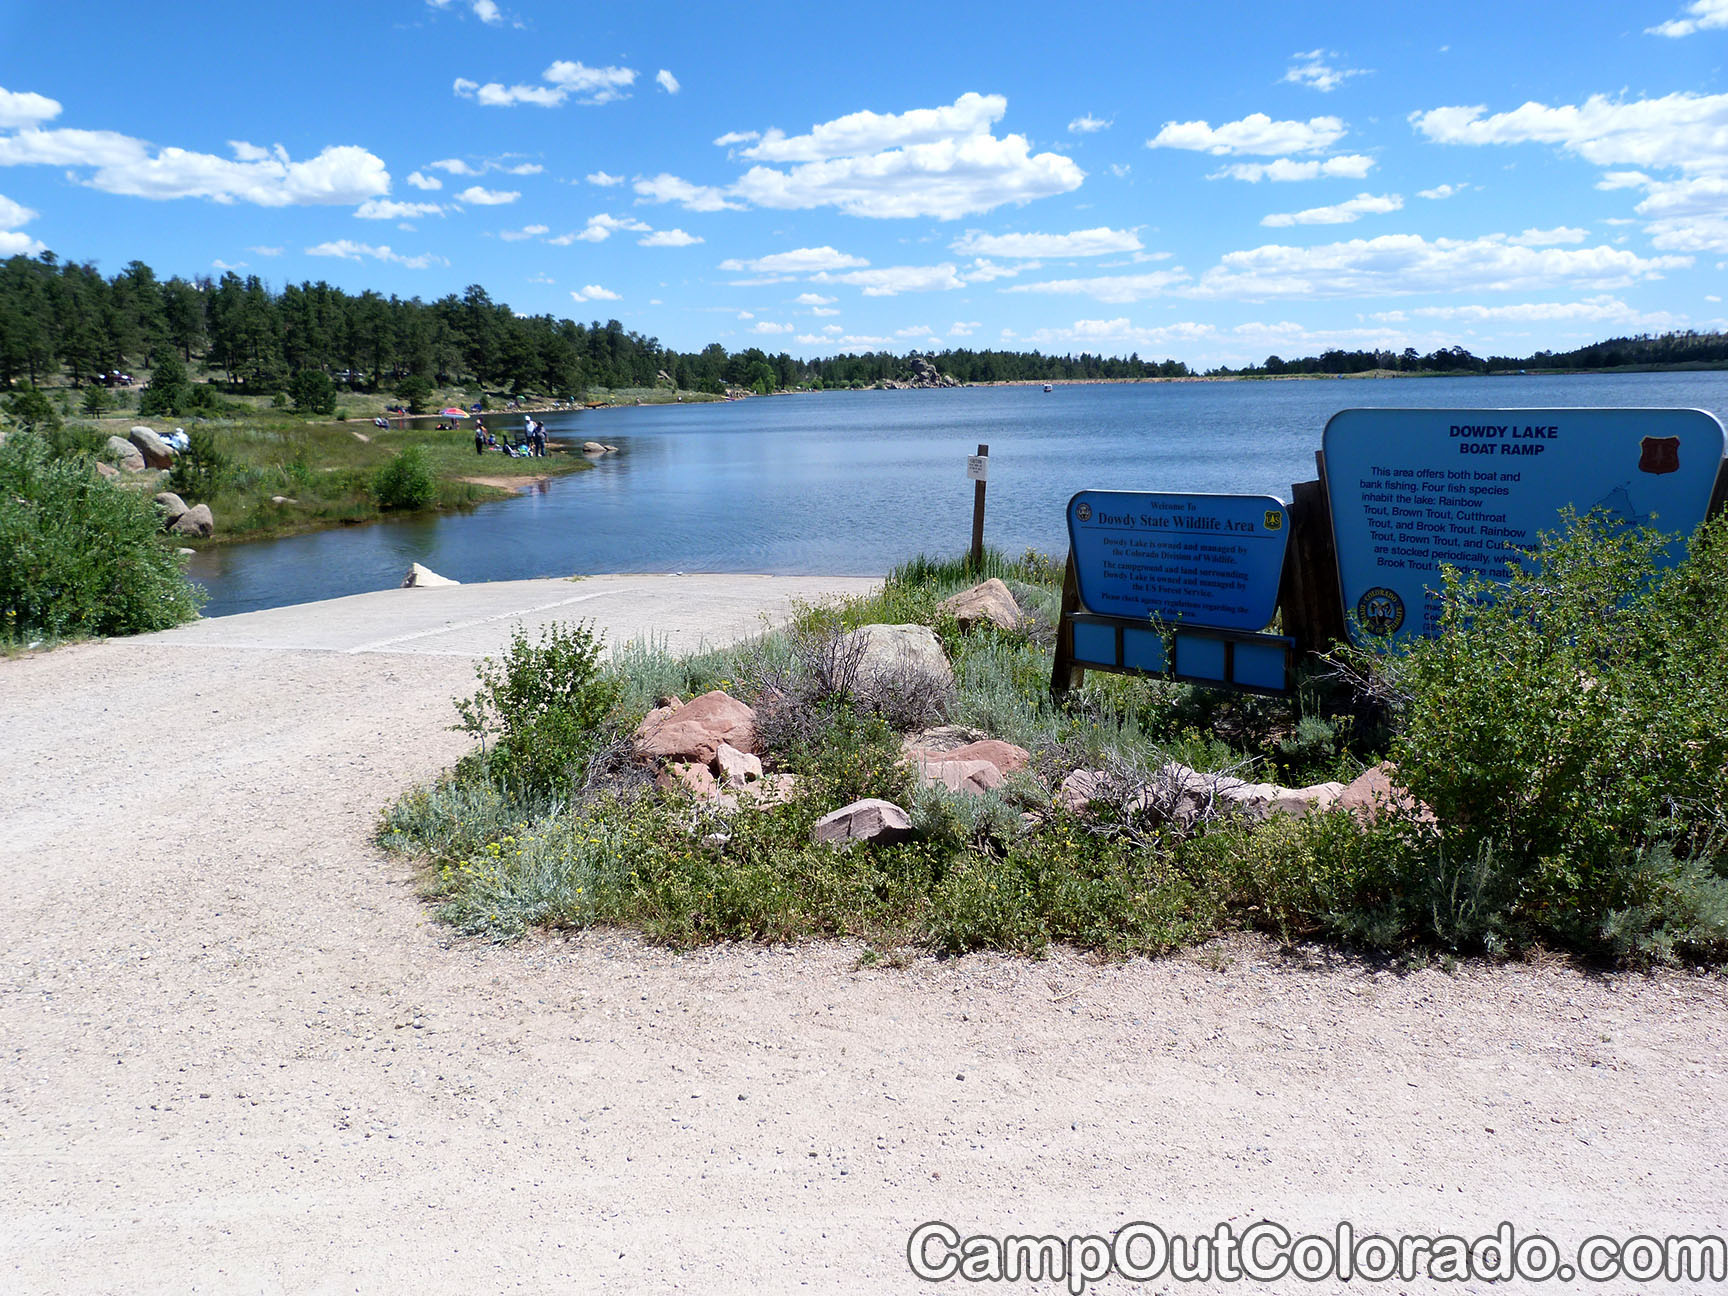 Campoutcolorado-dowdy-lake-campground-boat-dock